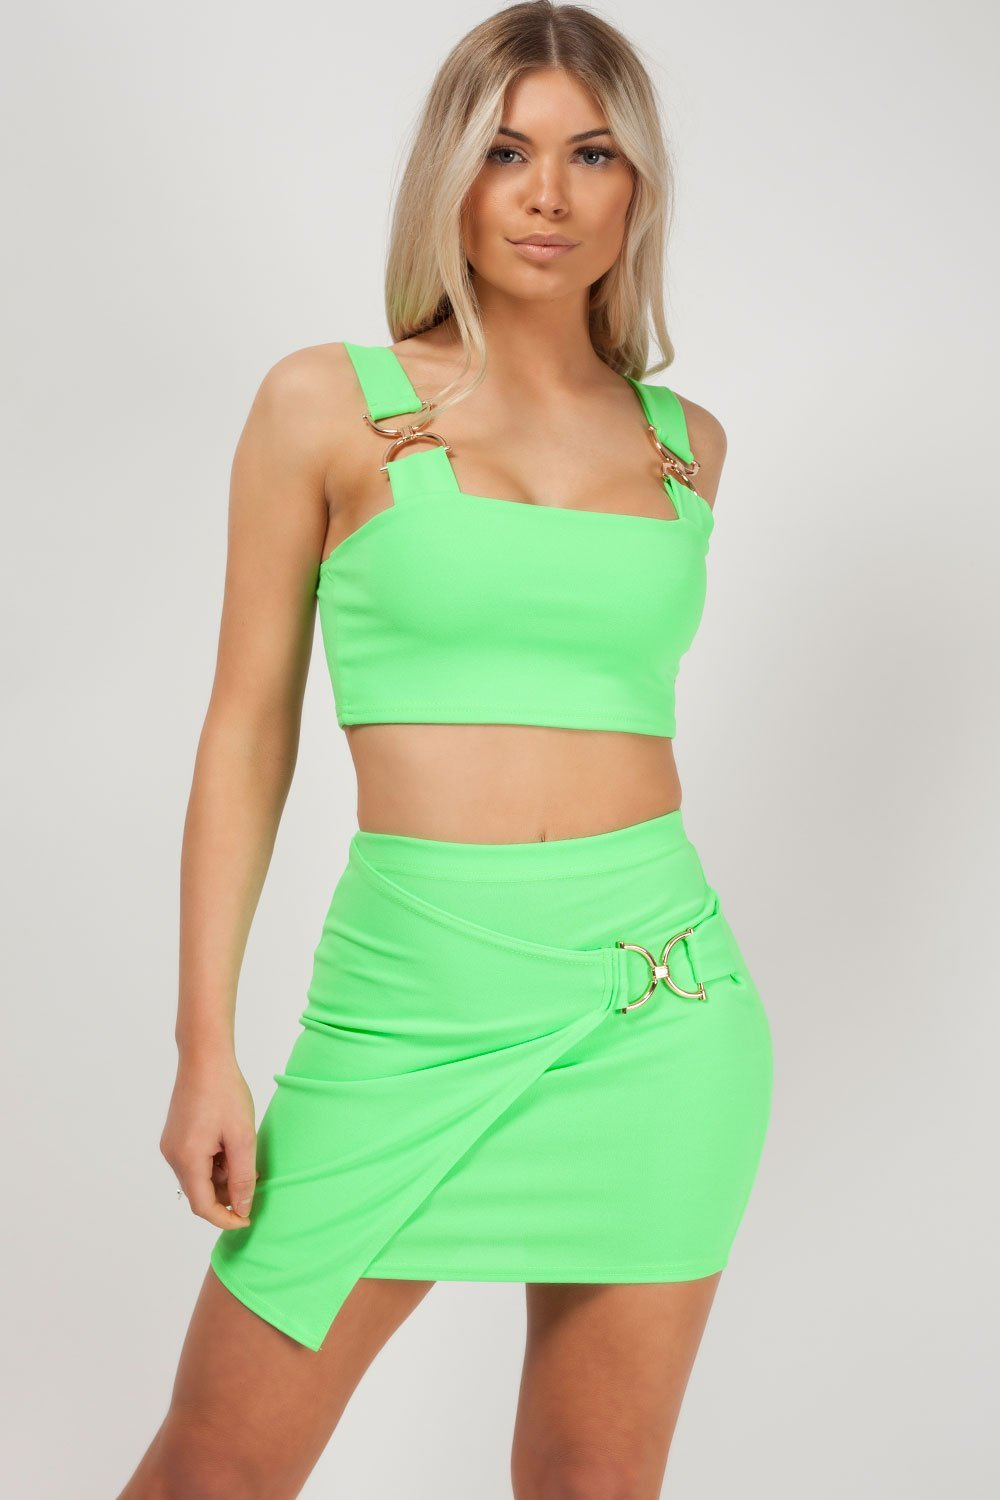 skirt and top set neon green